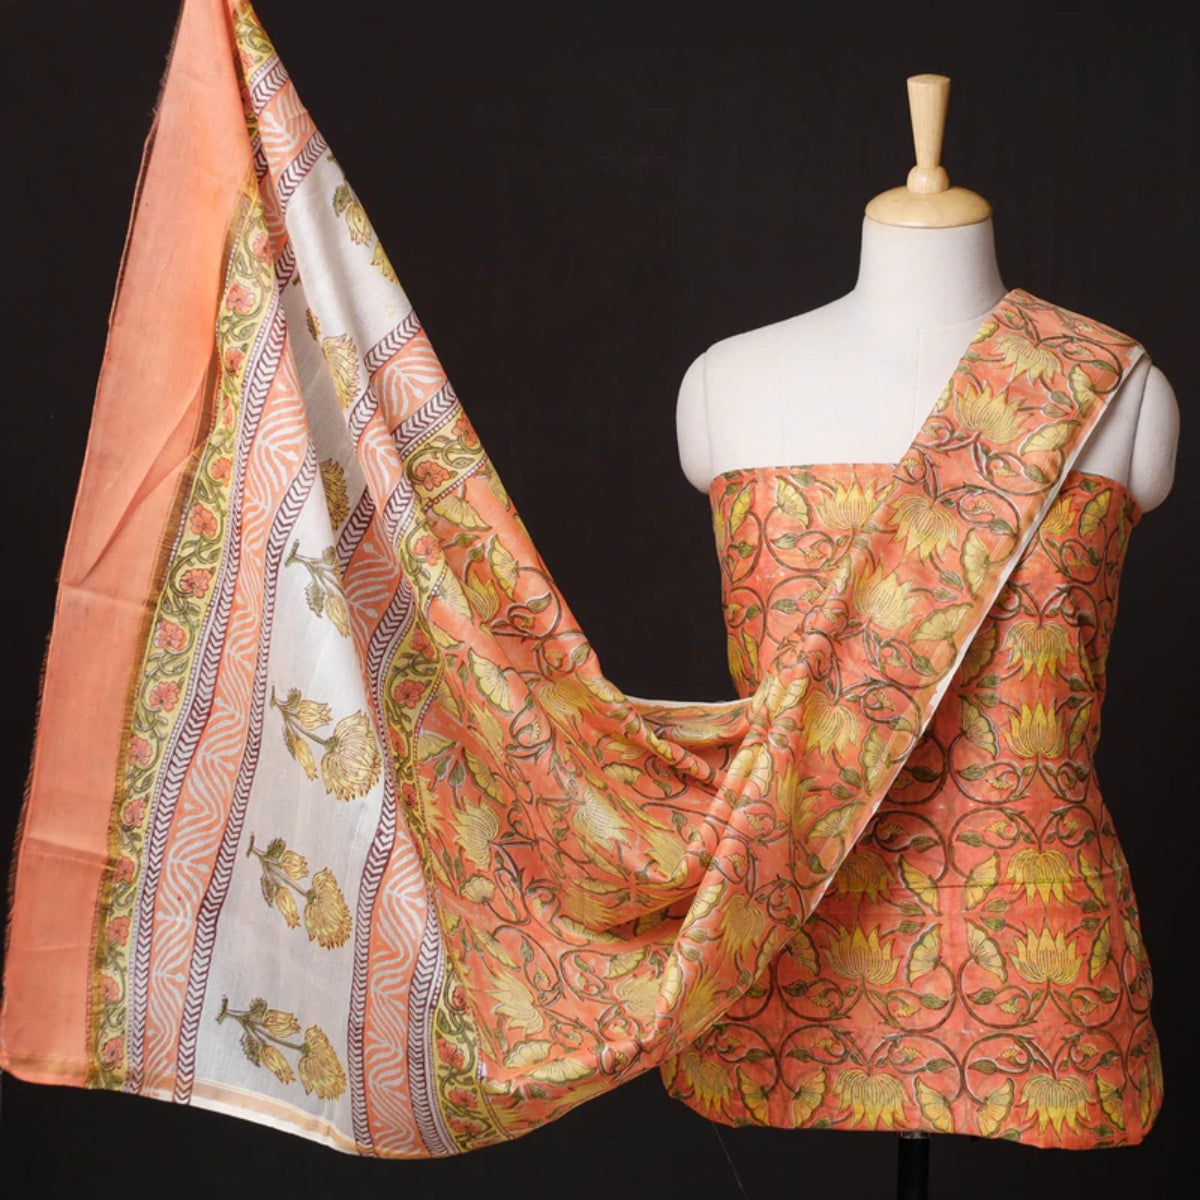 Sanganeri Block Printed Silk & Cotton Suit Material Sets of Rajasthan